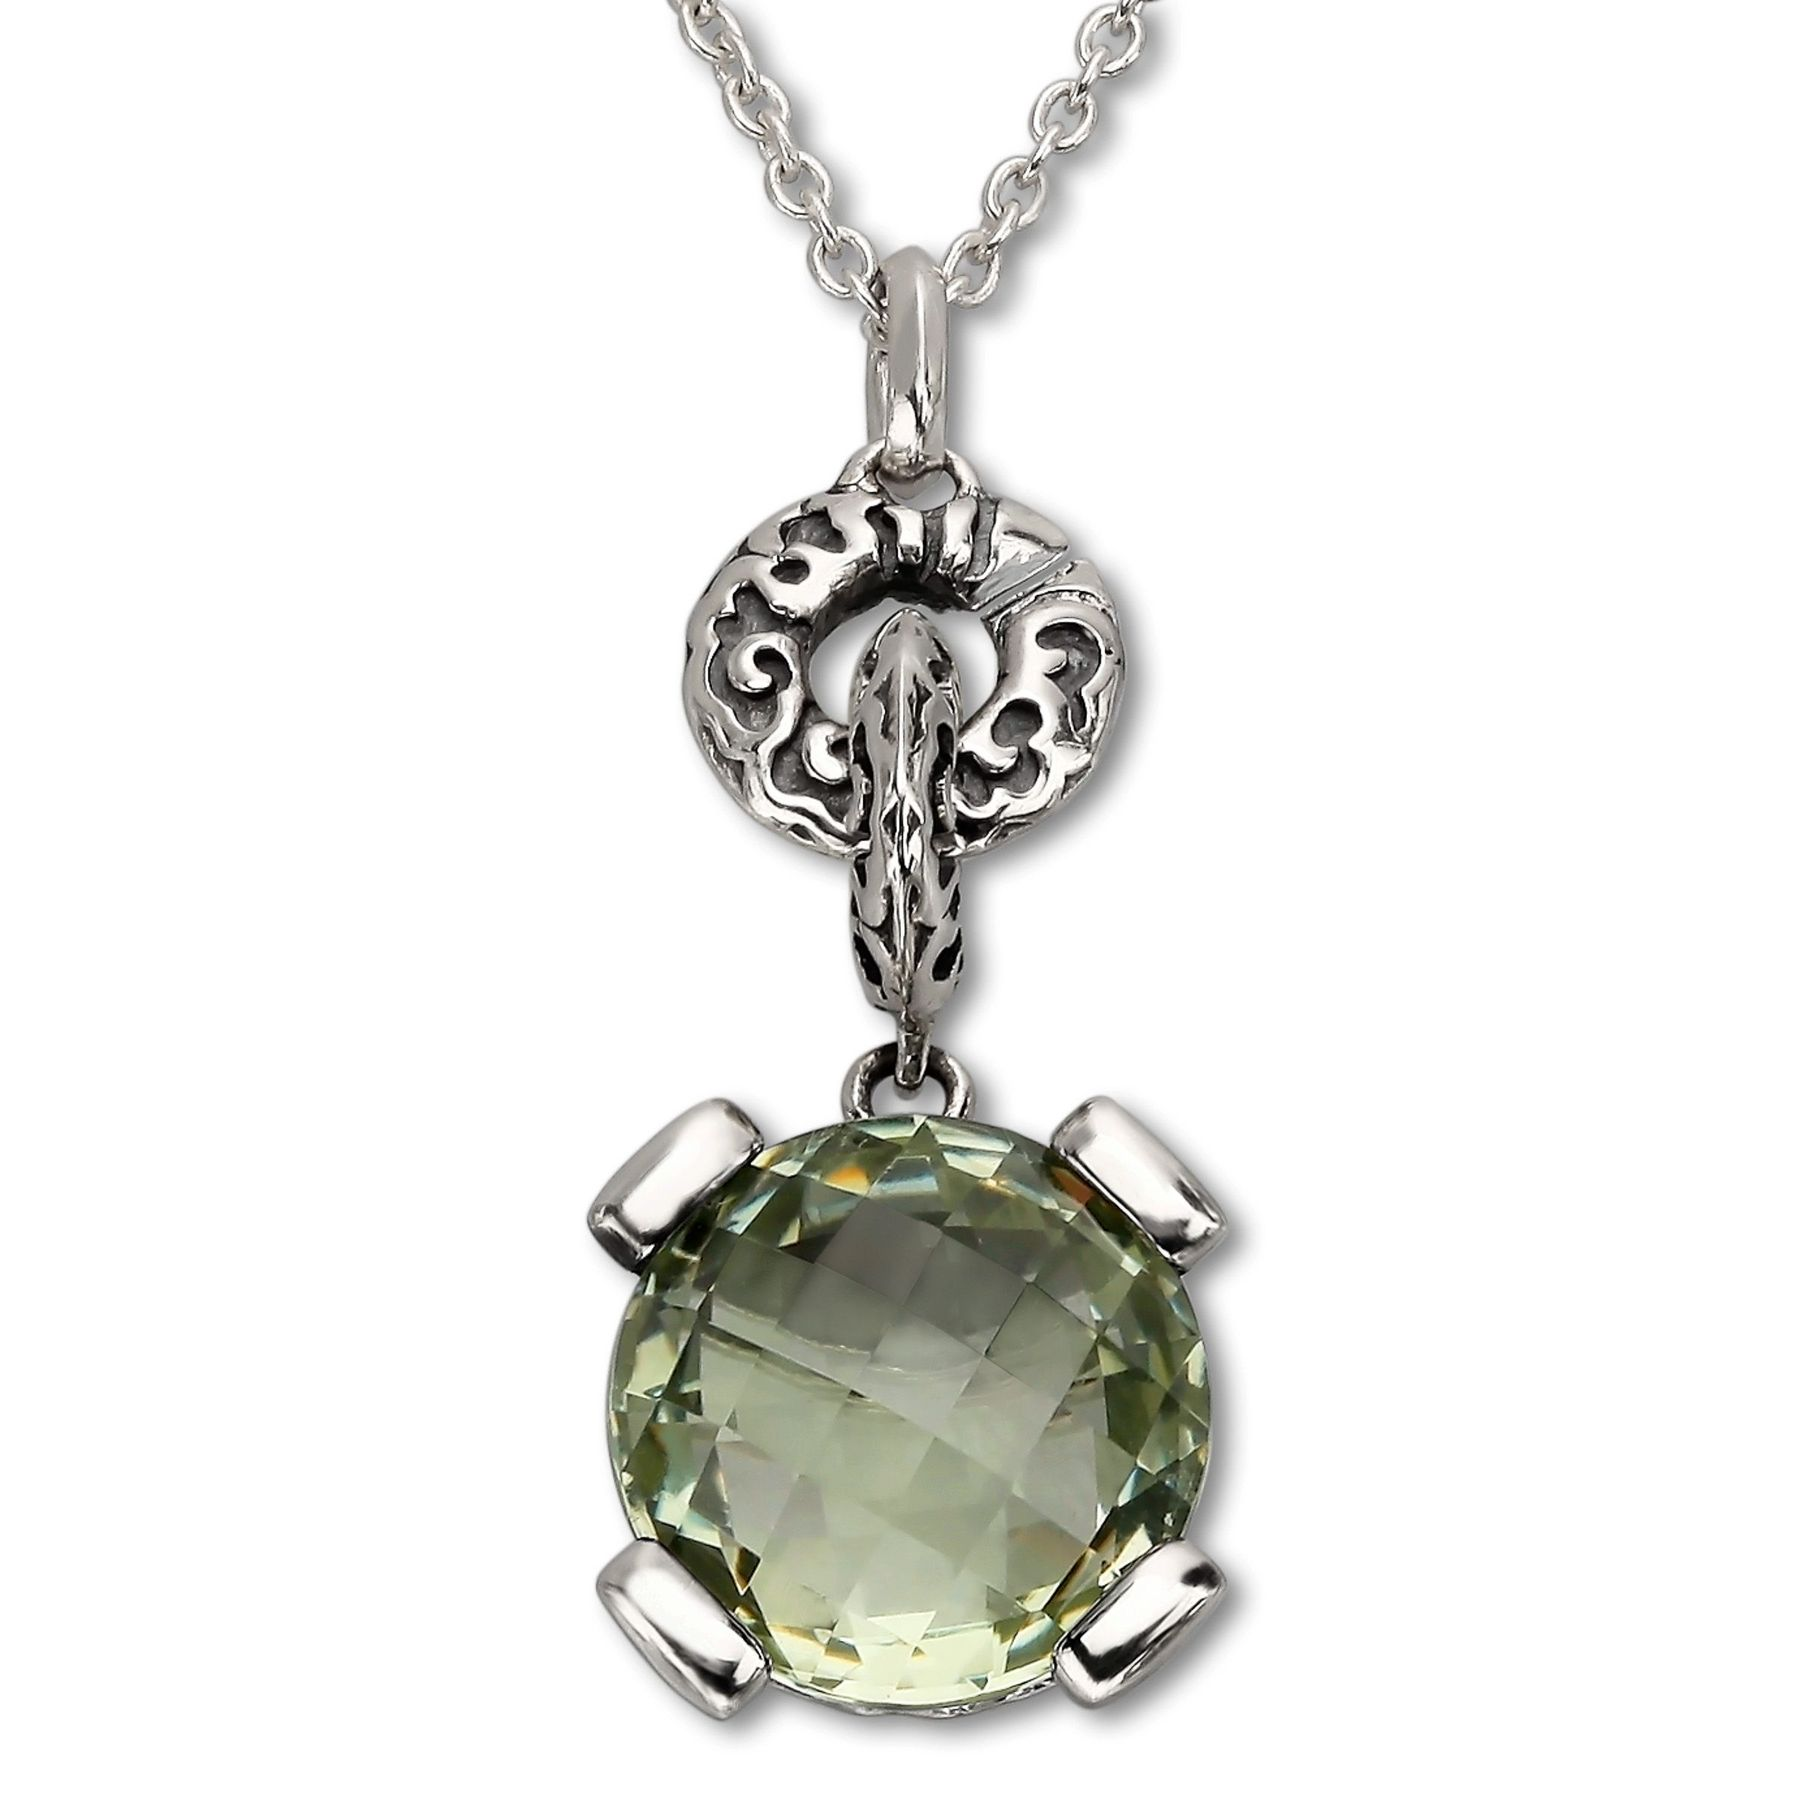 Evert degraeve 6 ct green amethyst pendant in sterling silver 6 ct 6 ct green amethyst pendant aloadofball Image collections